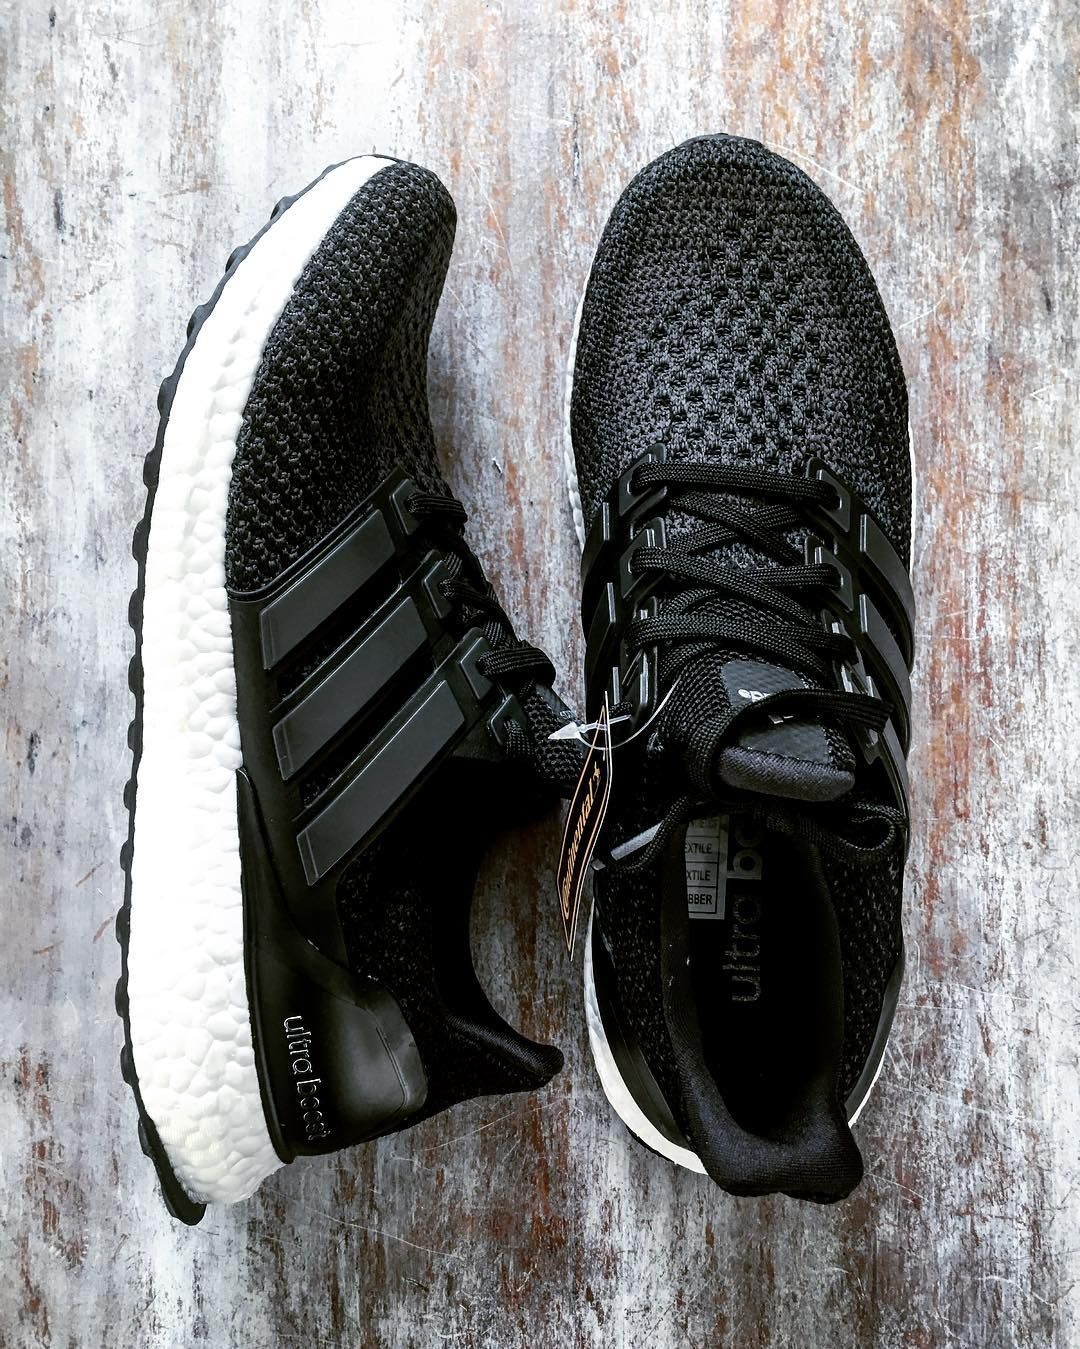 5 Upcoming Adidas Ultra Boost 3.0 Colorways First In Sneakers